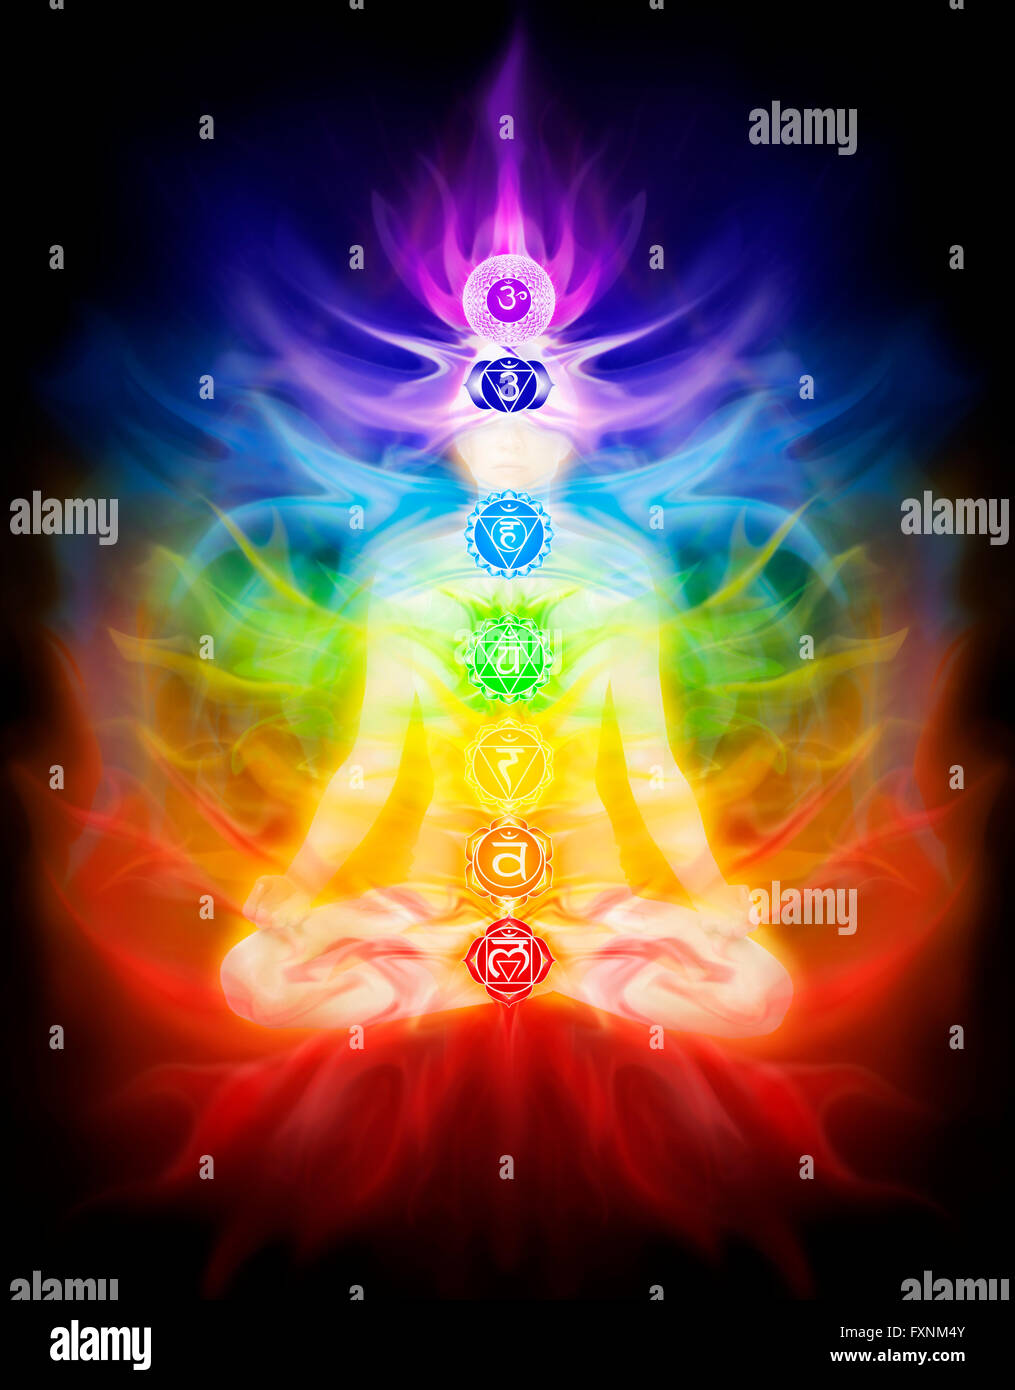 Woman in lotus pose with seven chakra symbols and coloured energy emanating from her body, illustration - Stock Image